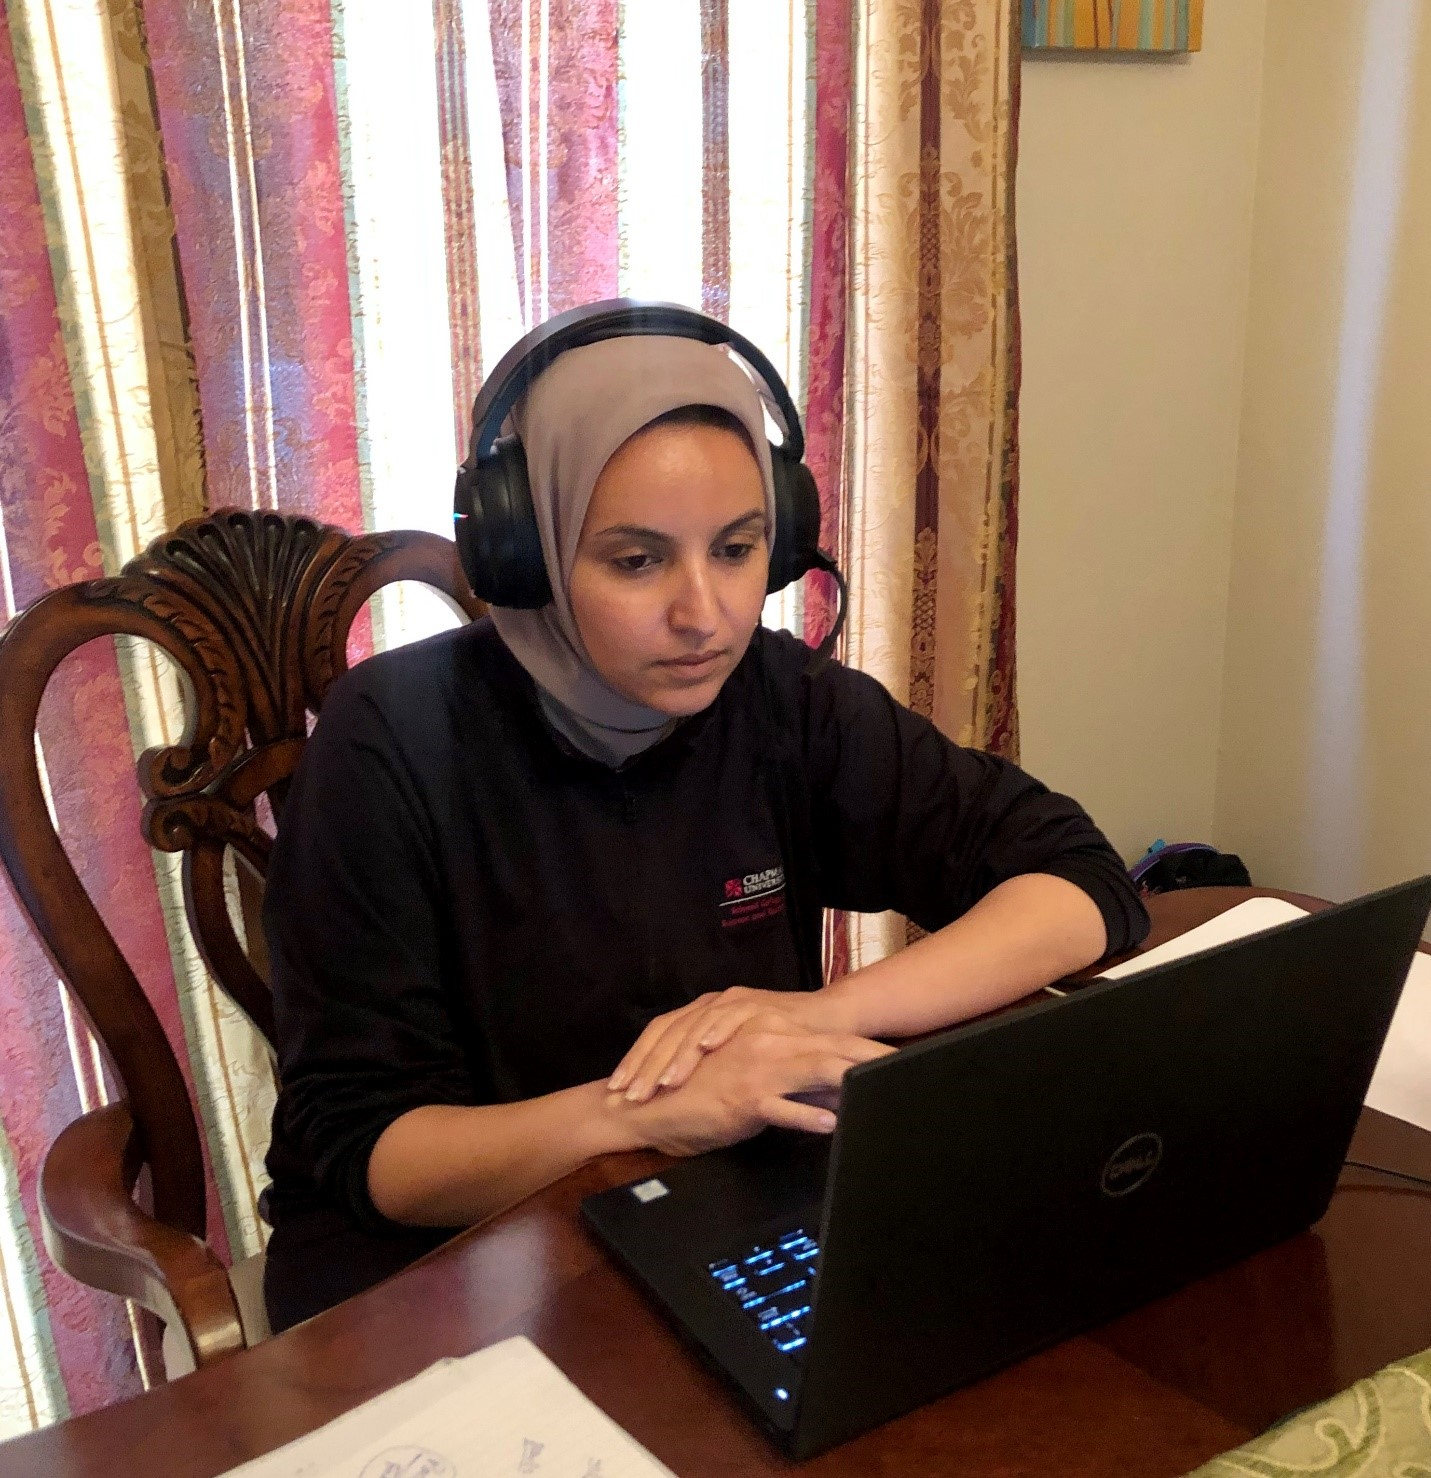 A woman wearing a headscarf and large over ear headphones sits at a table working on a laptop.